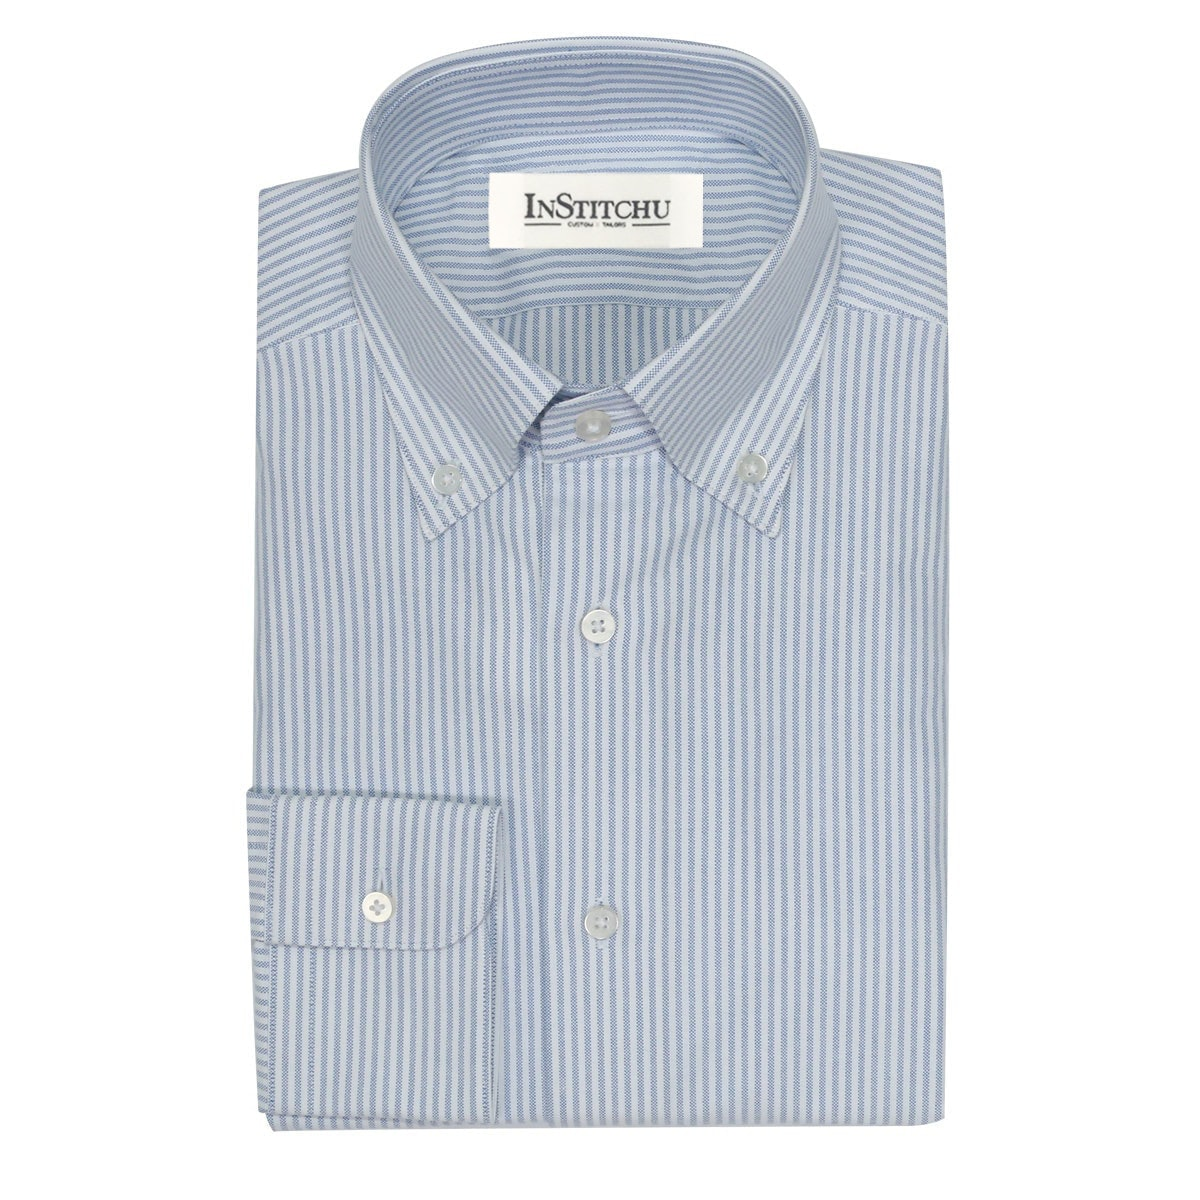 InStitchu Collection The Bathers Blue Striped Shirt